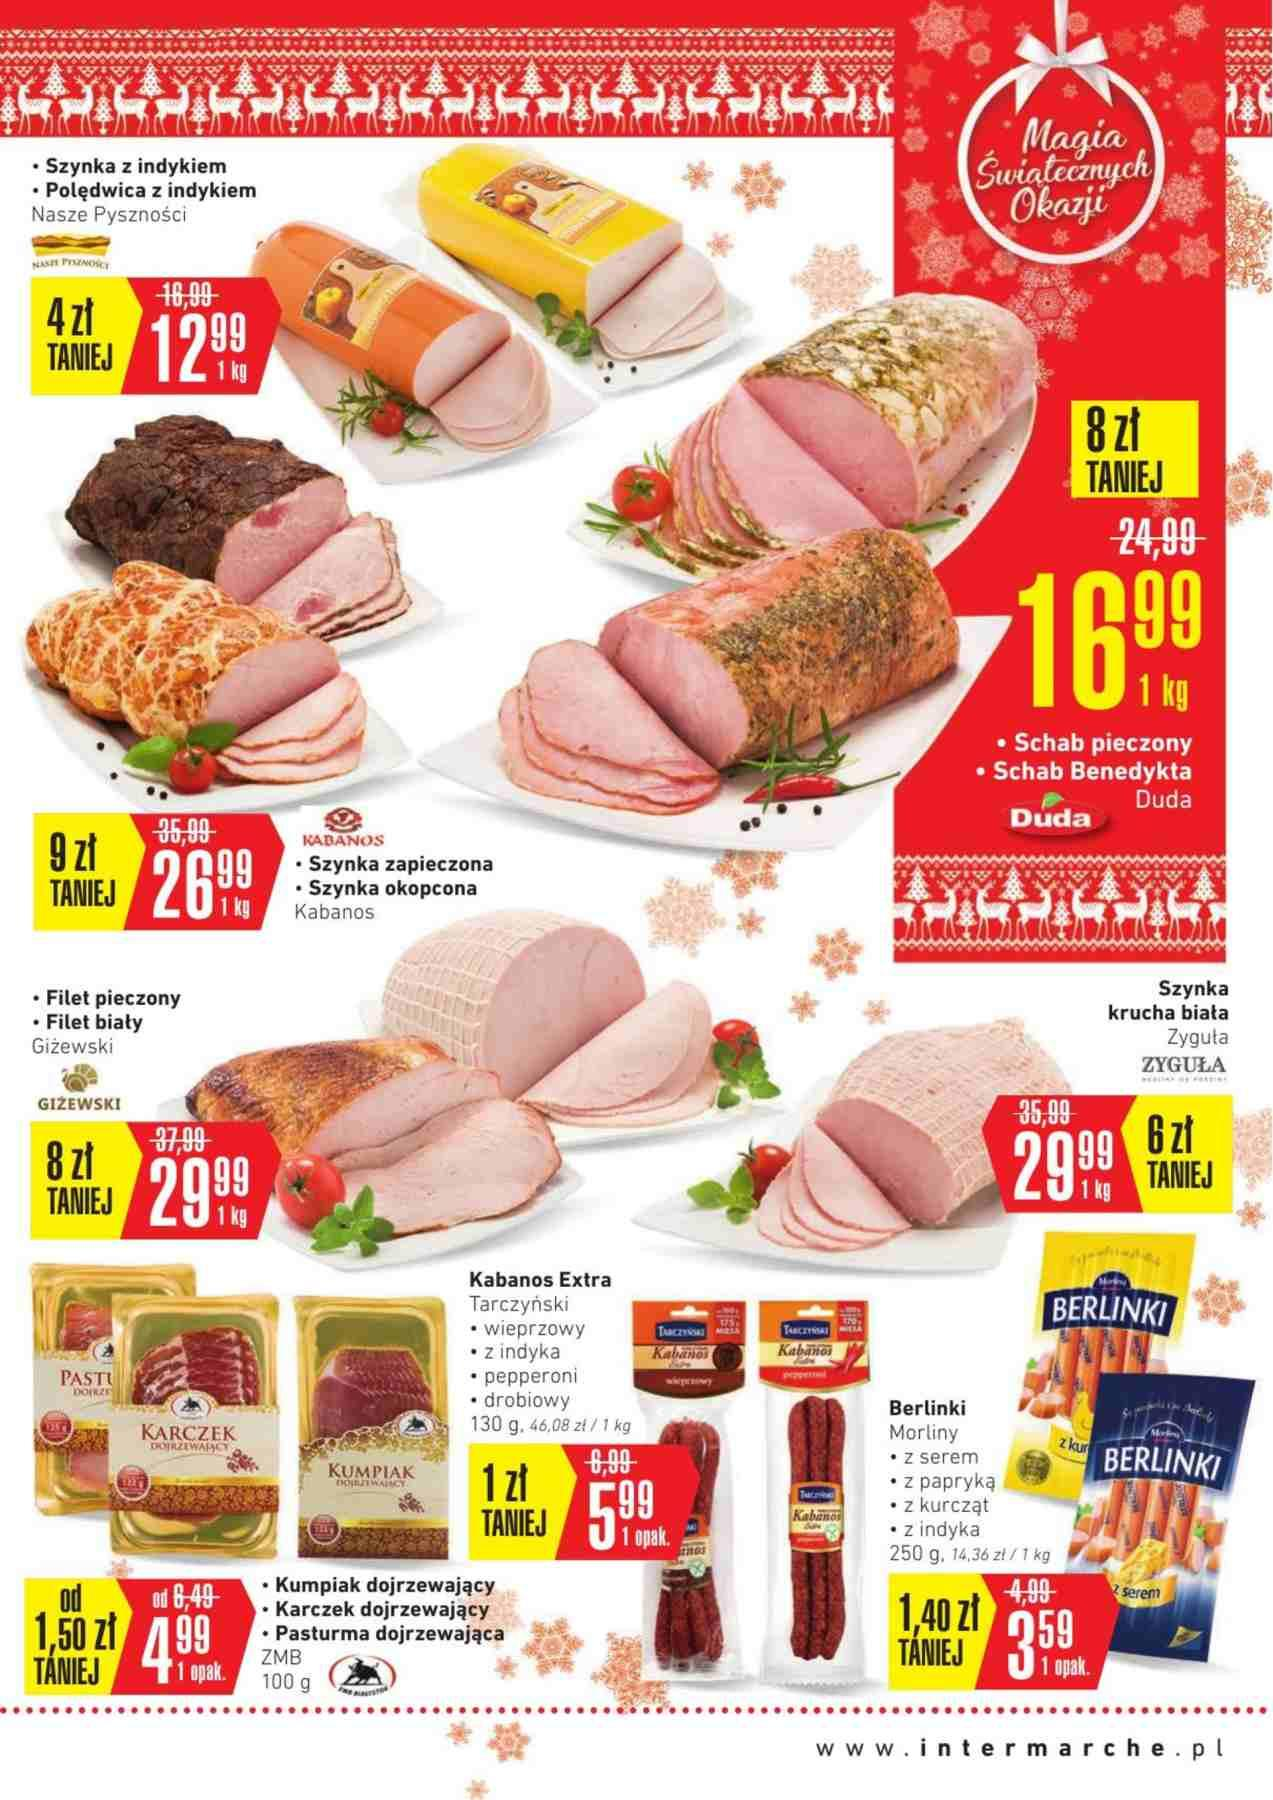 Gazetka promocyjna Intermarche do 17/12/2018 str.13